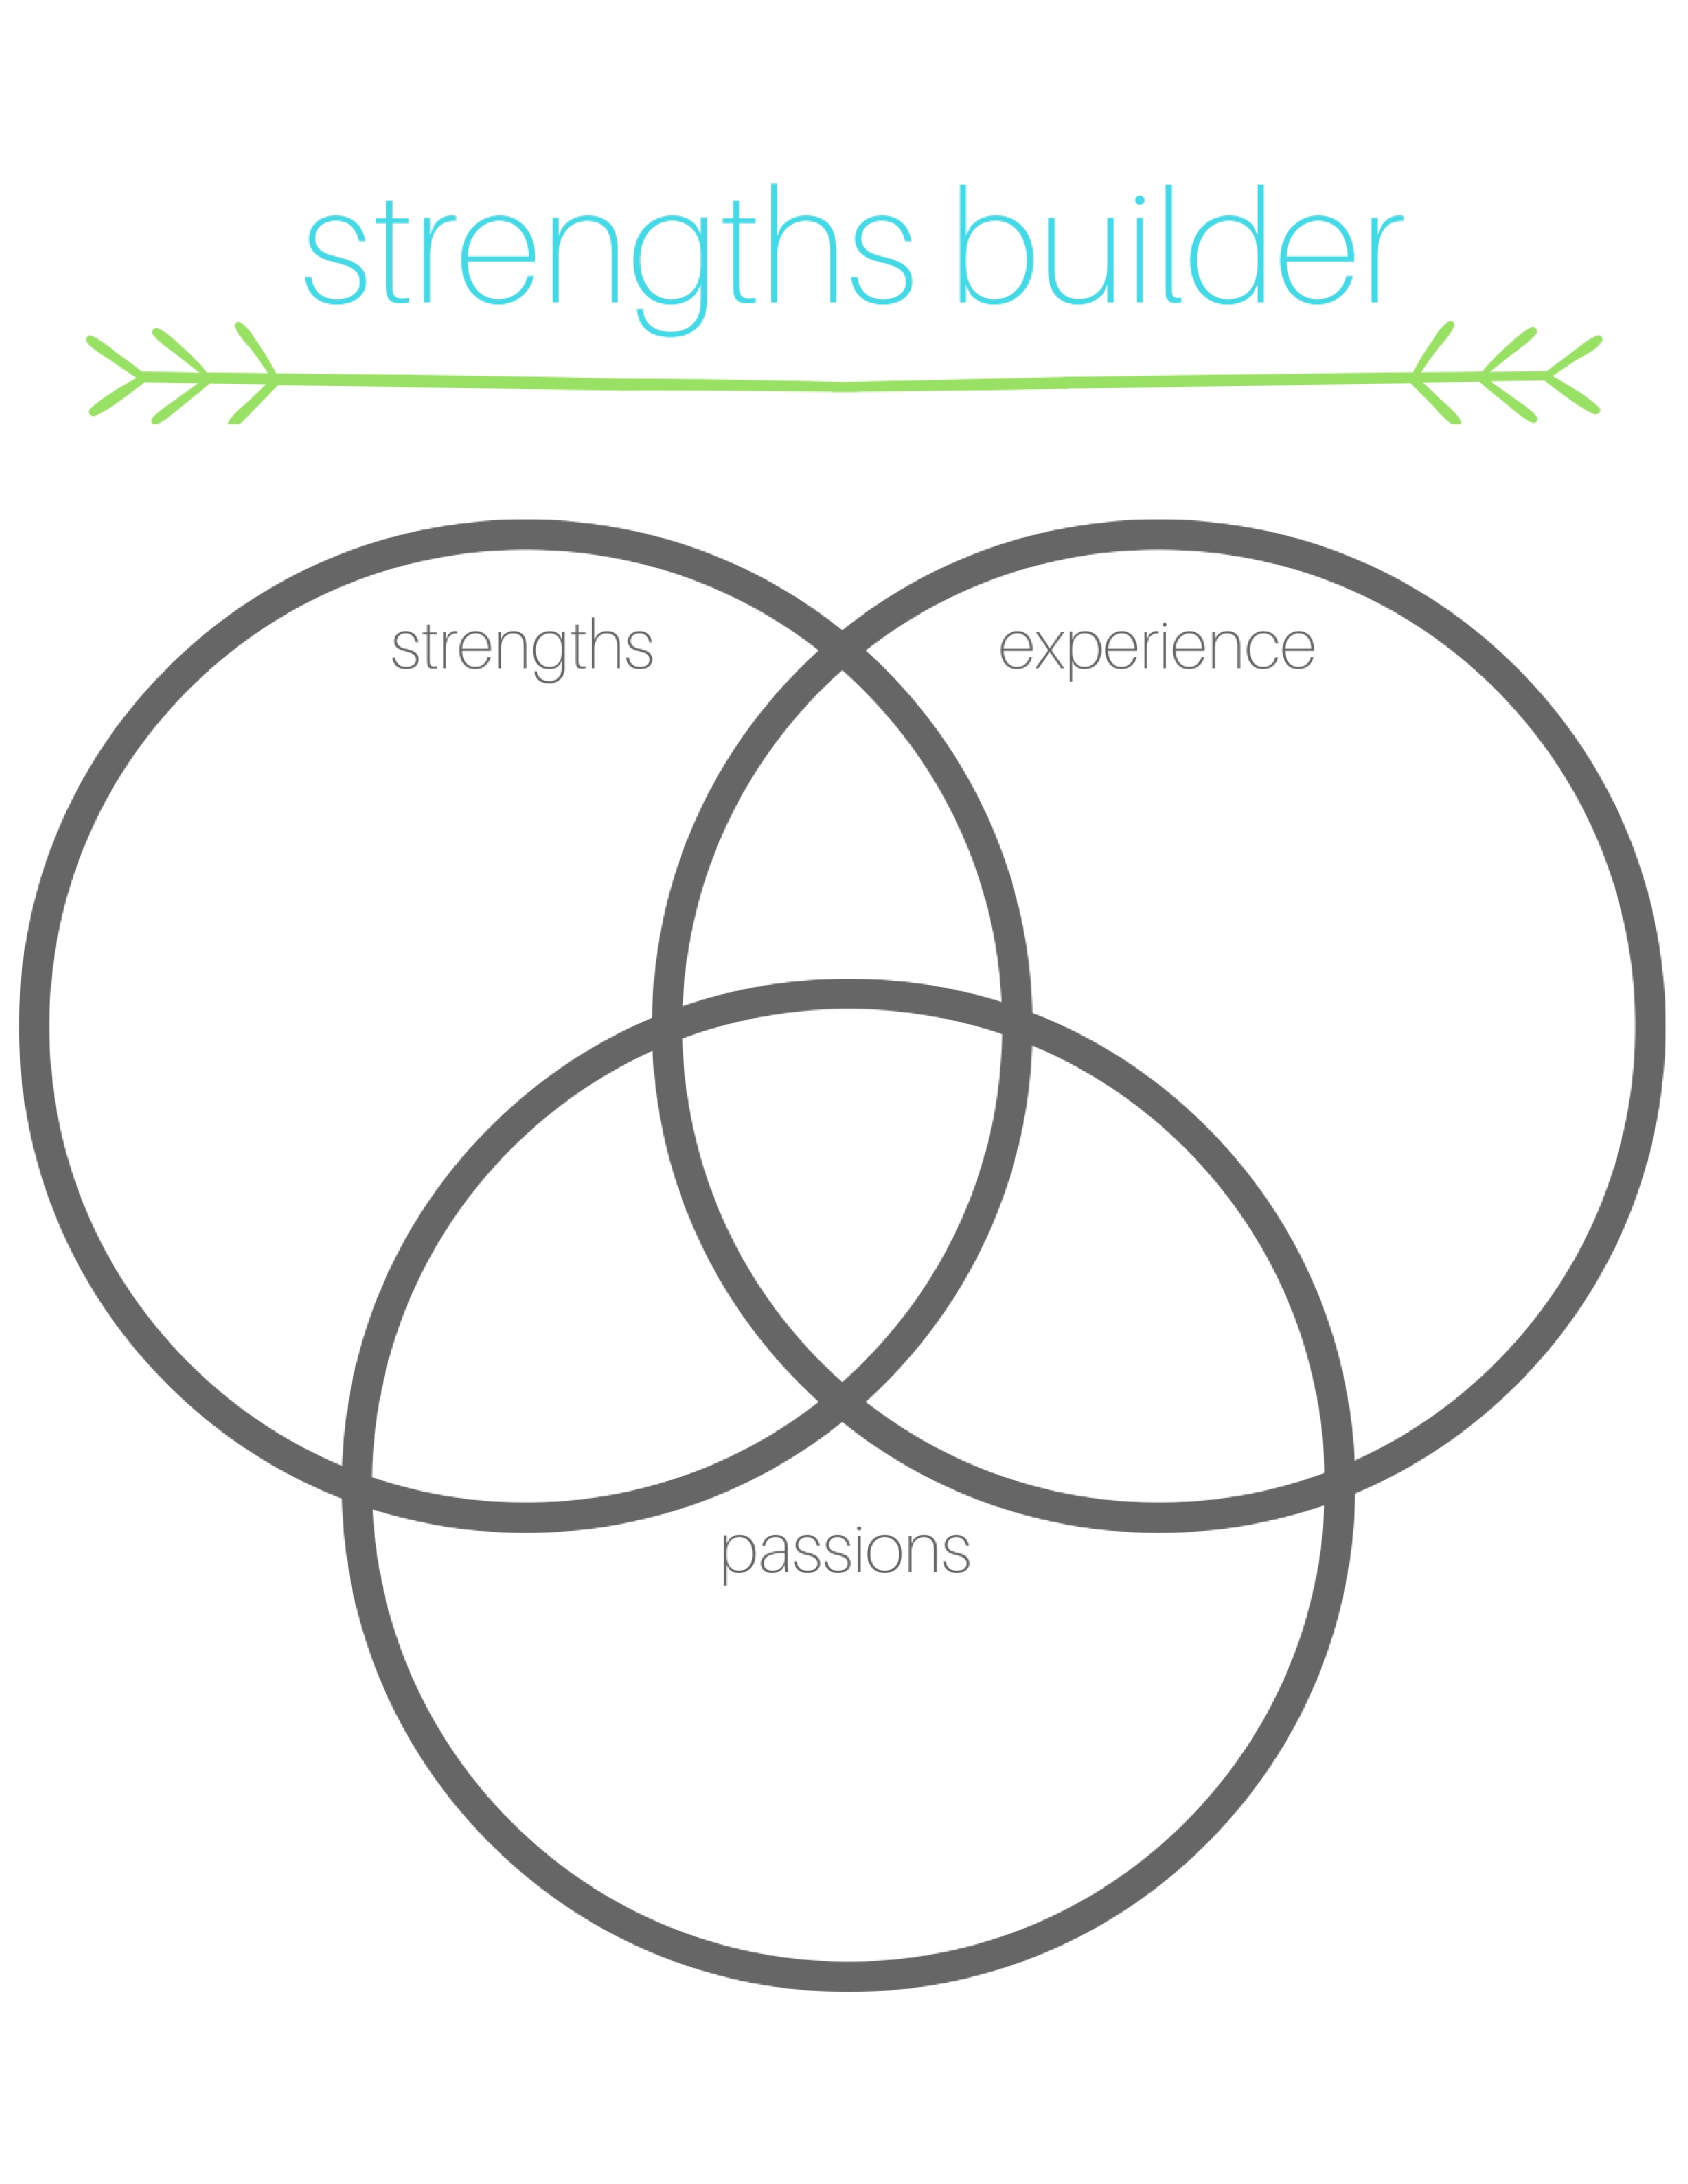 strengths finder, self help, self help book, find your strengths. entrepreneur, work from home, talents, what are my talents, how to find talent, what am I good at